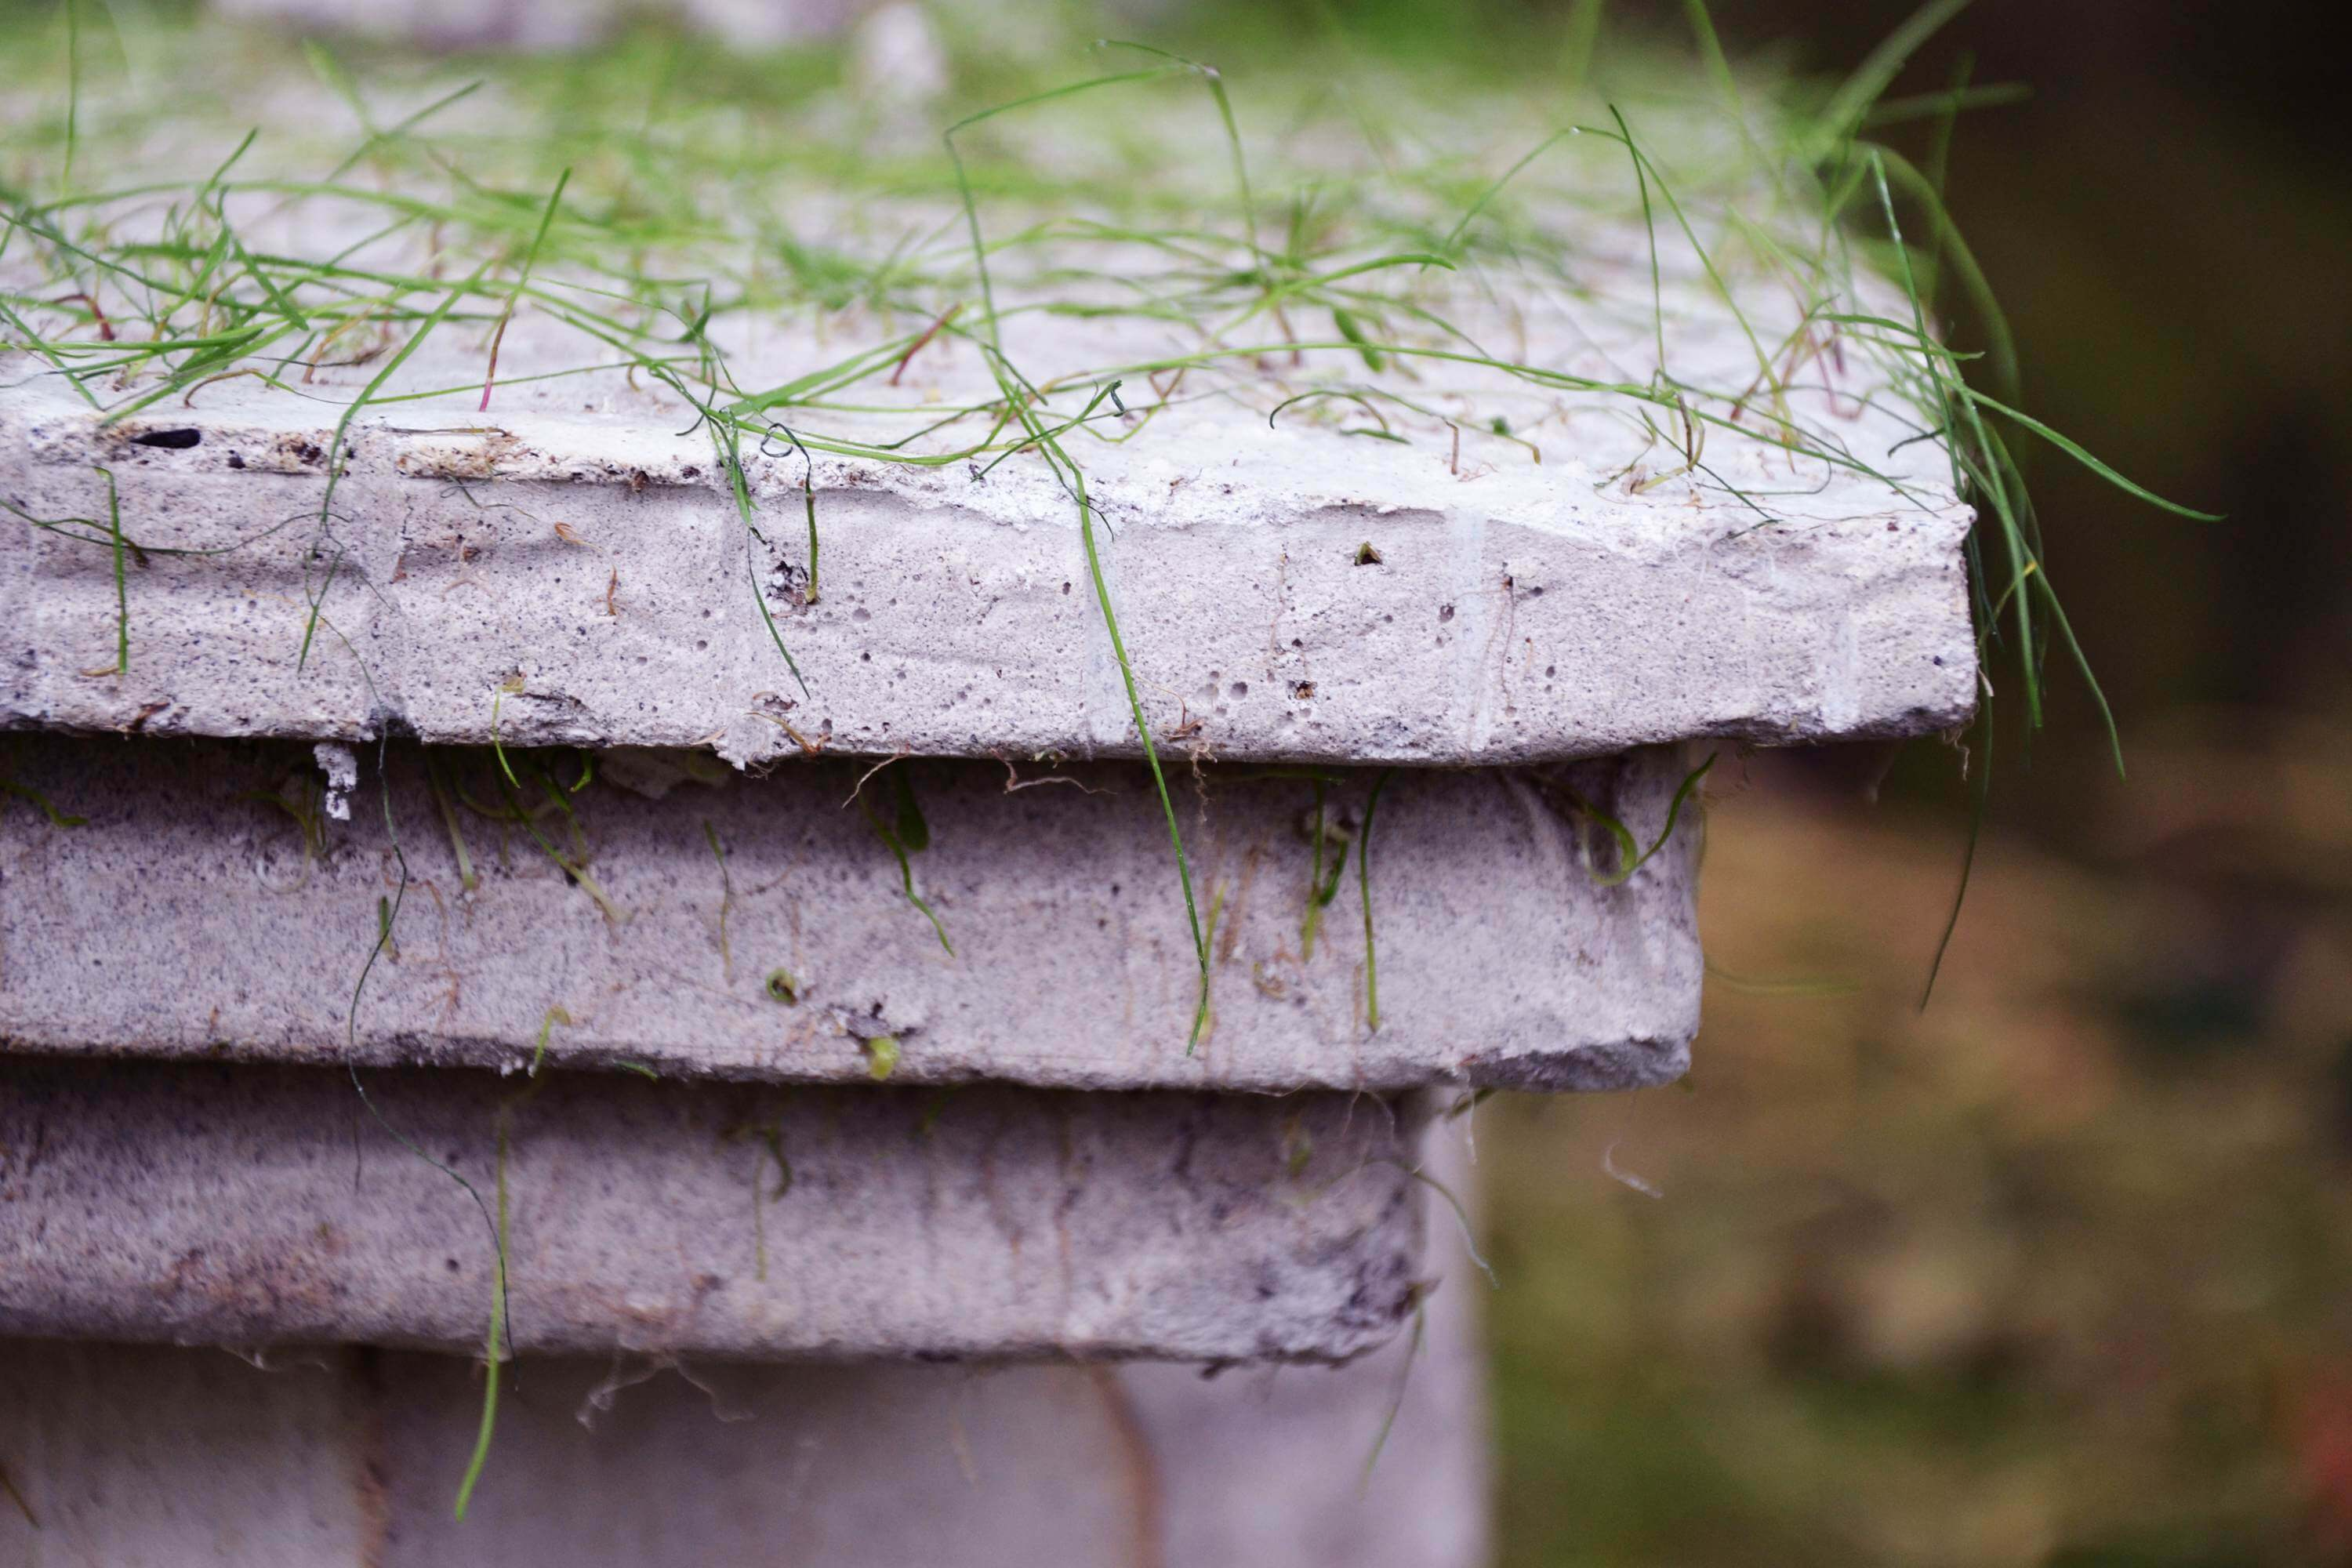 Ruins merging and growing back into nature | Eclectic Trends